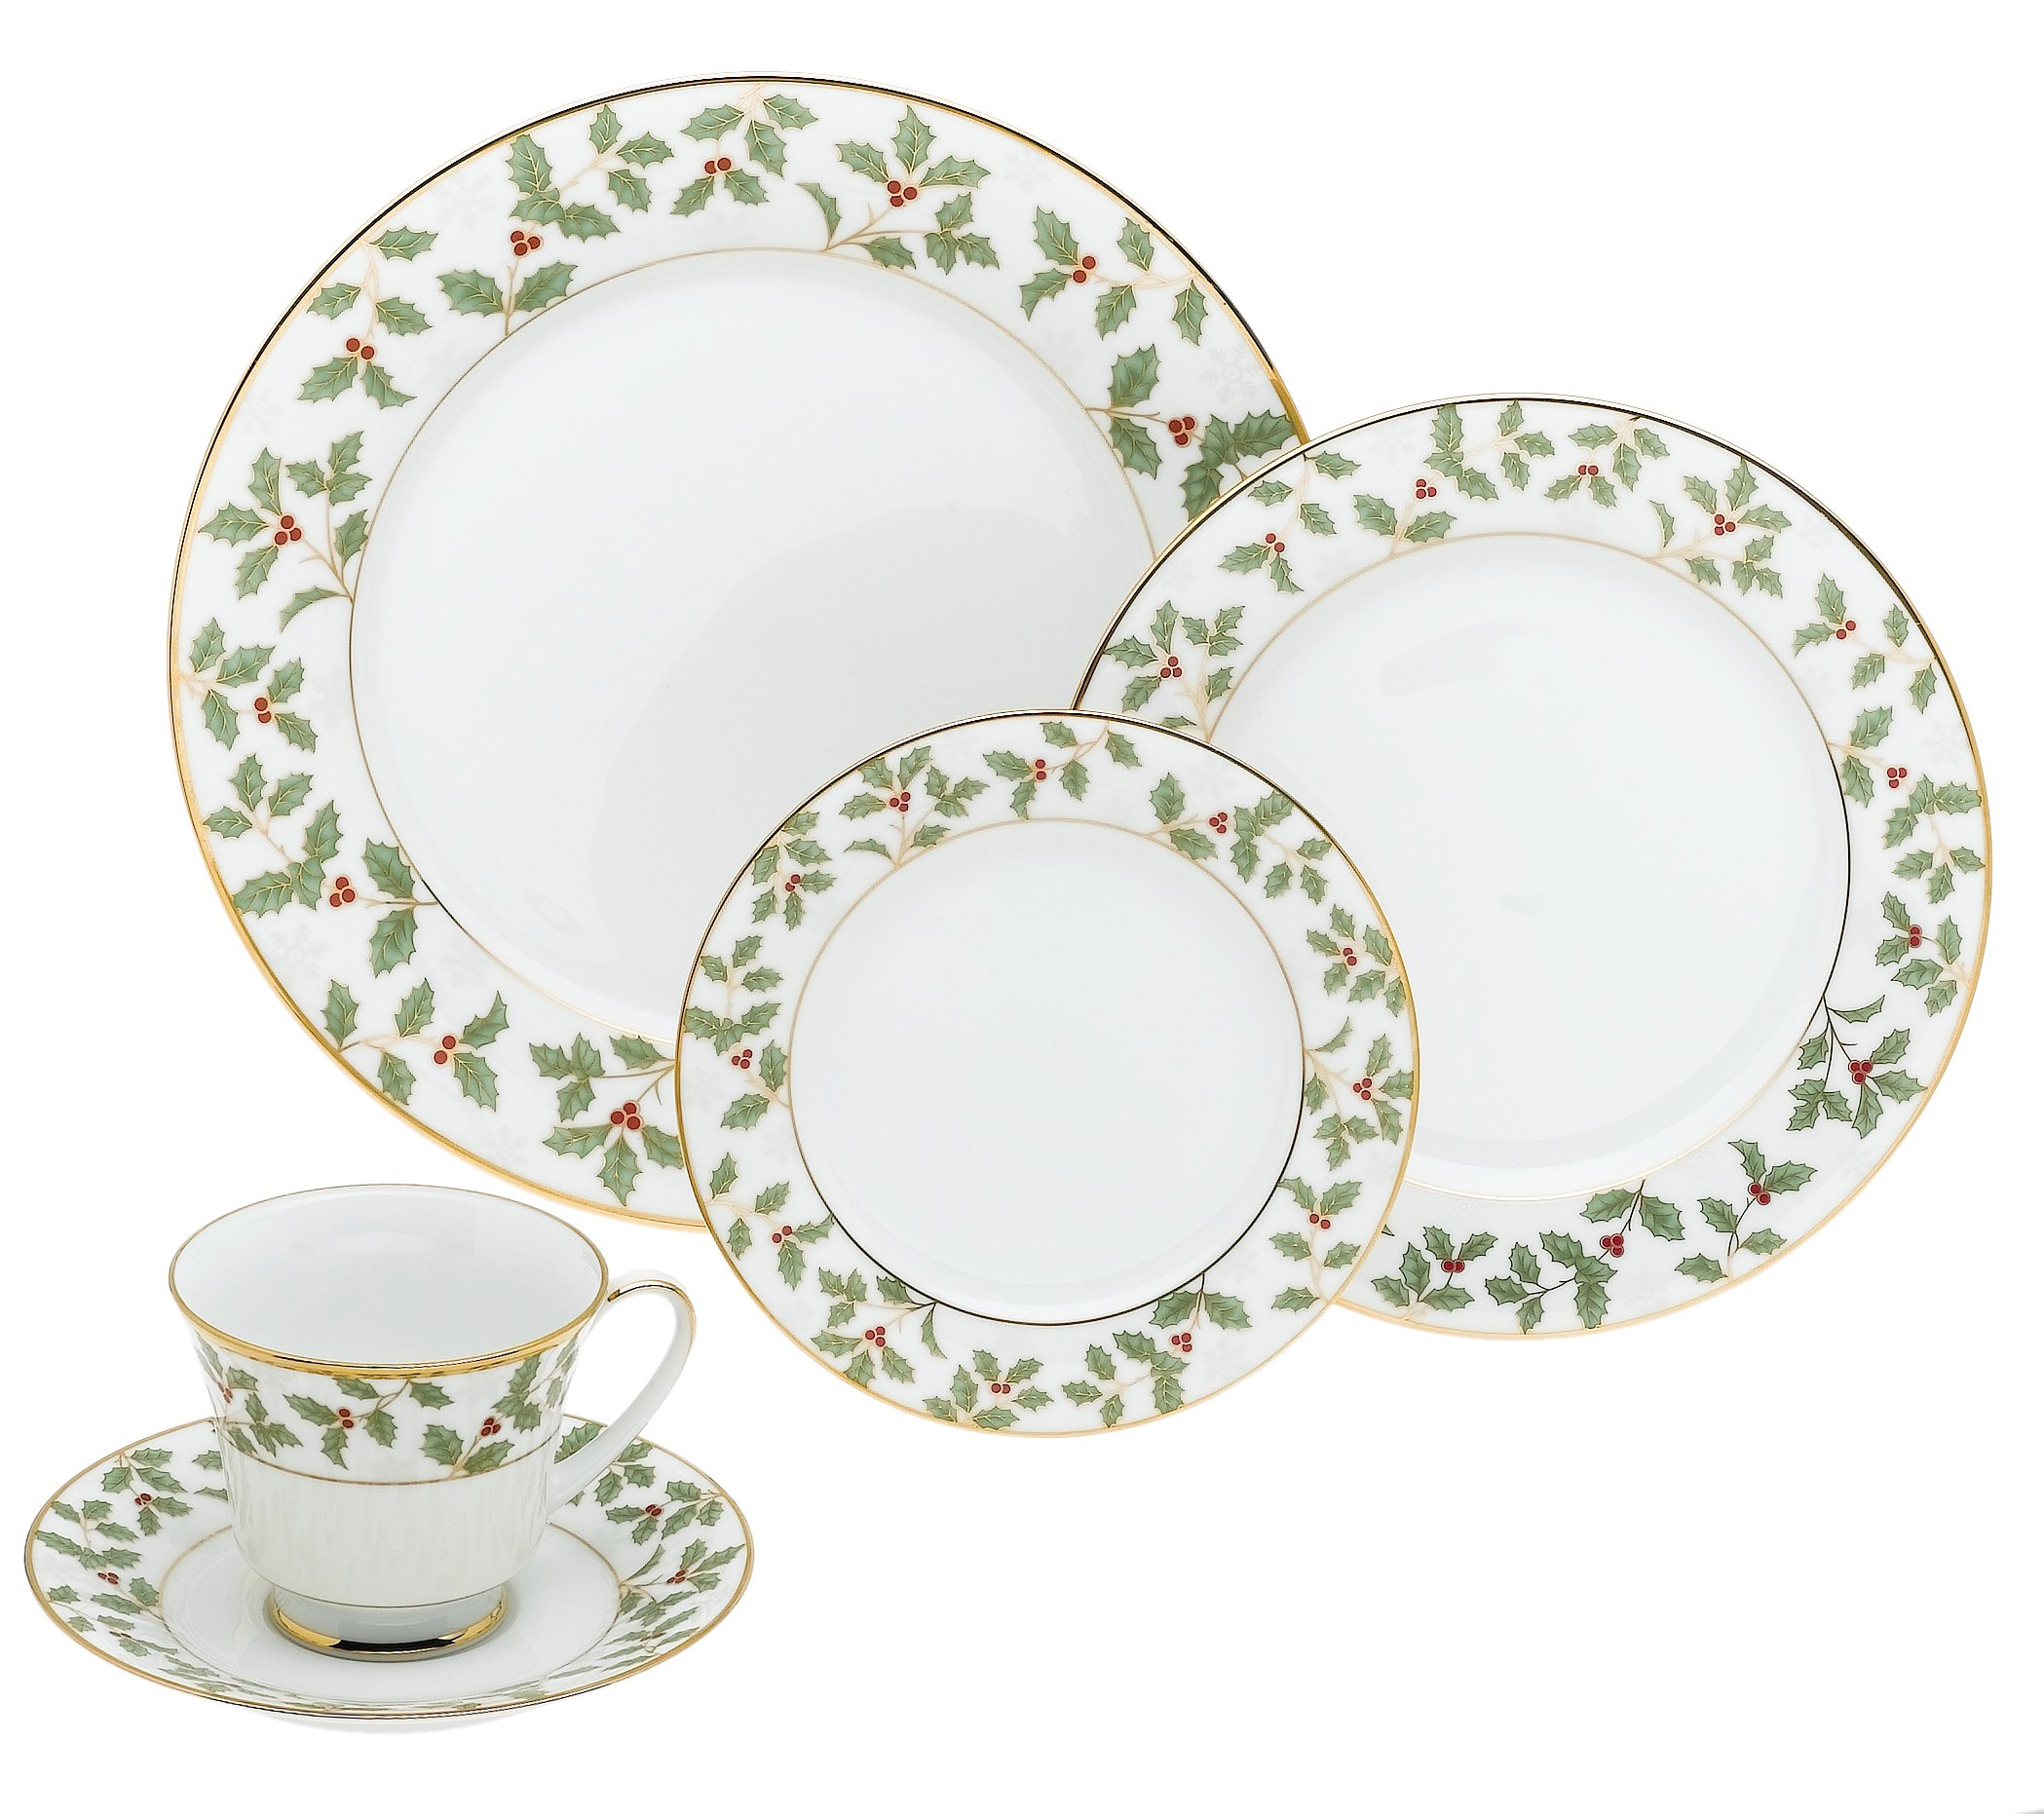 Noritake Holly and Berry Gold 40-Pc. Set-Service for 8 in Green/Red/White - Fine, pure white porcelain Beutifully designed holly leaves decorate the shoulder Complete service for eight included - kitchen-tabletop, kitchen-dining-room, dinnerware-sets - 812X3fuvaAS -